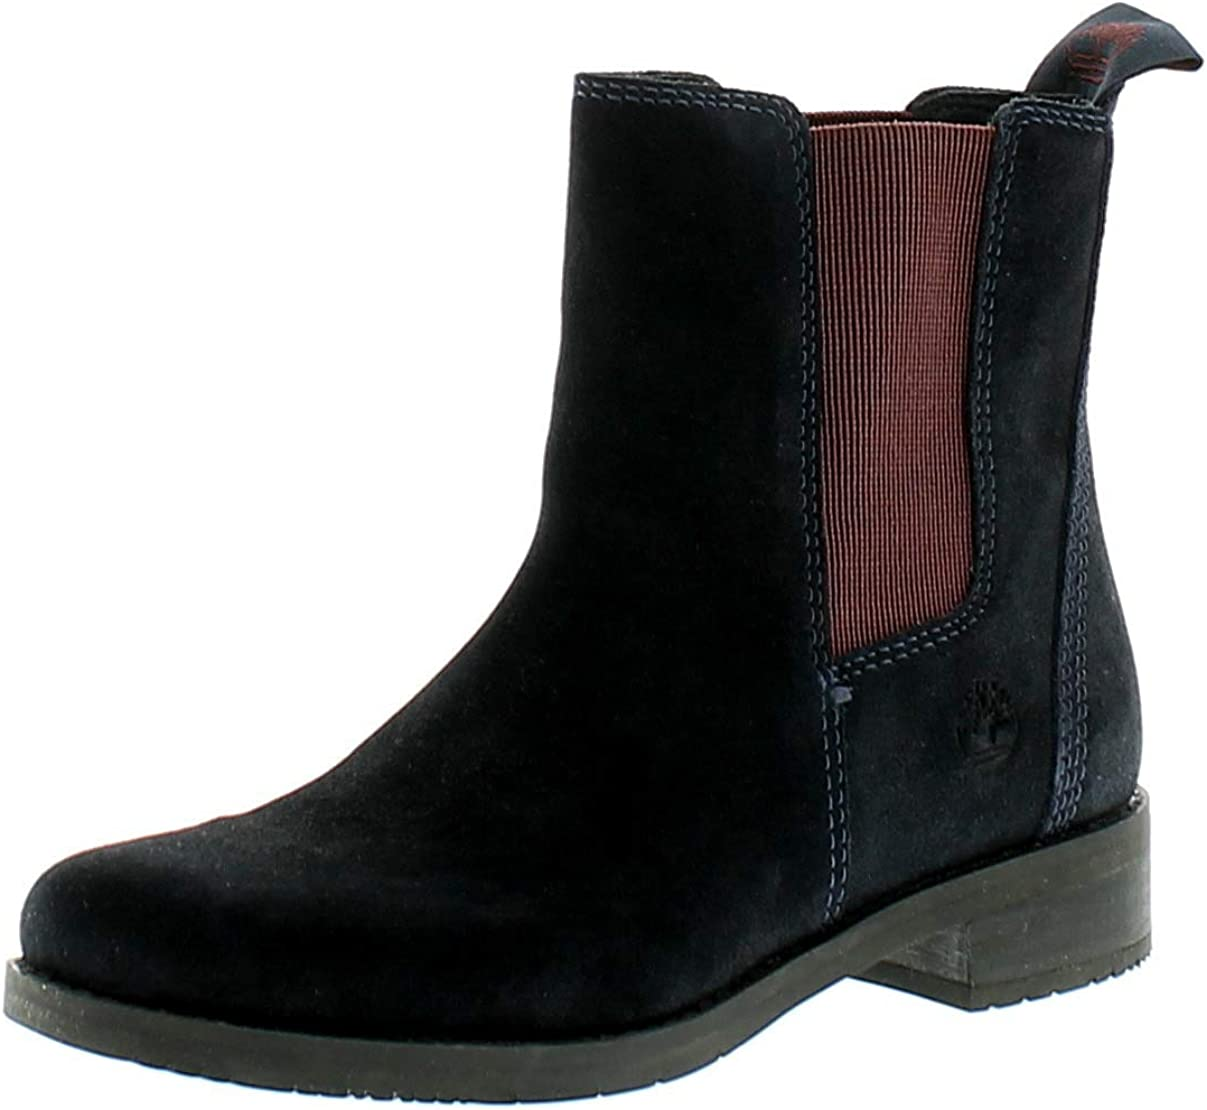 Acostumbrar esta ahí Agresivo  Timberland Venice Prk Chel Womens Leather Material Ankle Boots Navy Suede -  9.5 UK: Amazon.co.uk: Shoes & Bags